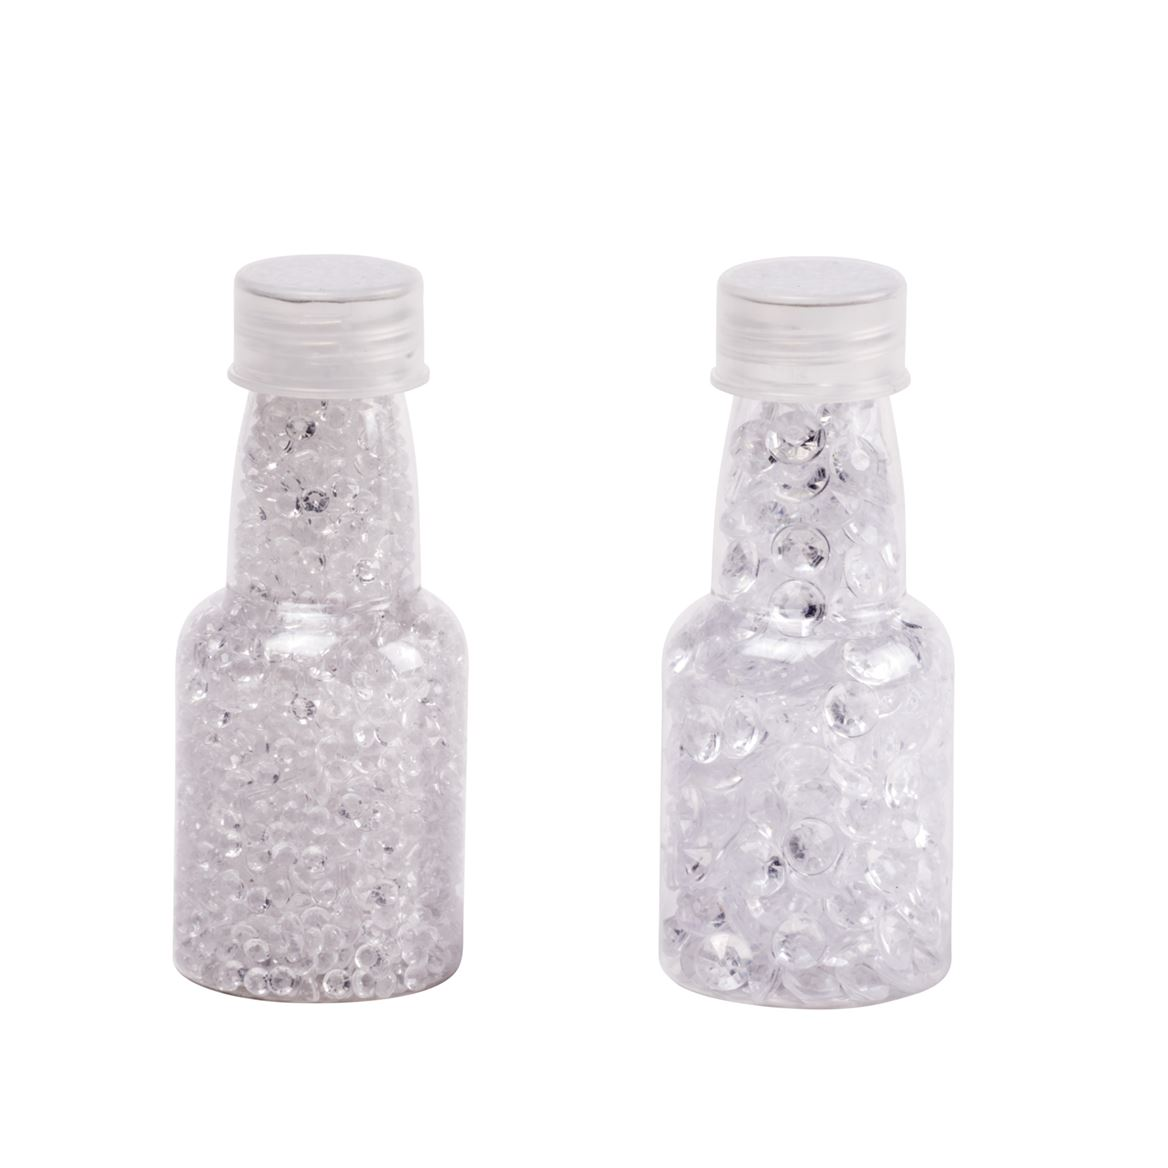 SHINY Decoratie in fles 2 maten transparant H 10 cm; Ø 4 cm_shiny-decoratie-in-fles-2-maten-transparant-h-10-cm;-ø-4-cm